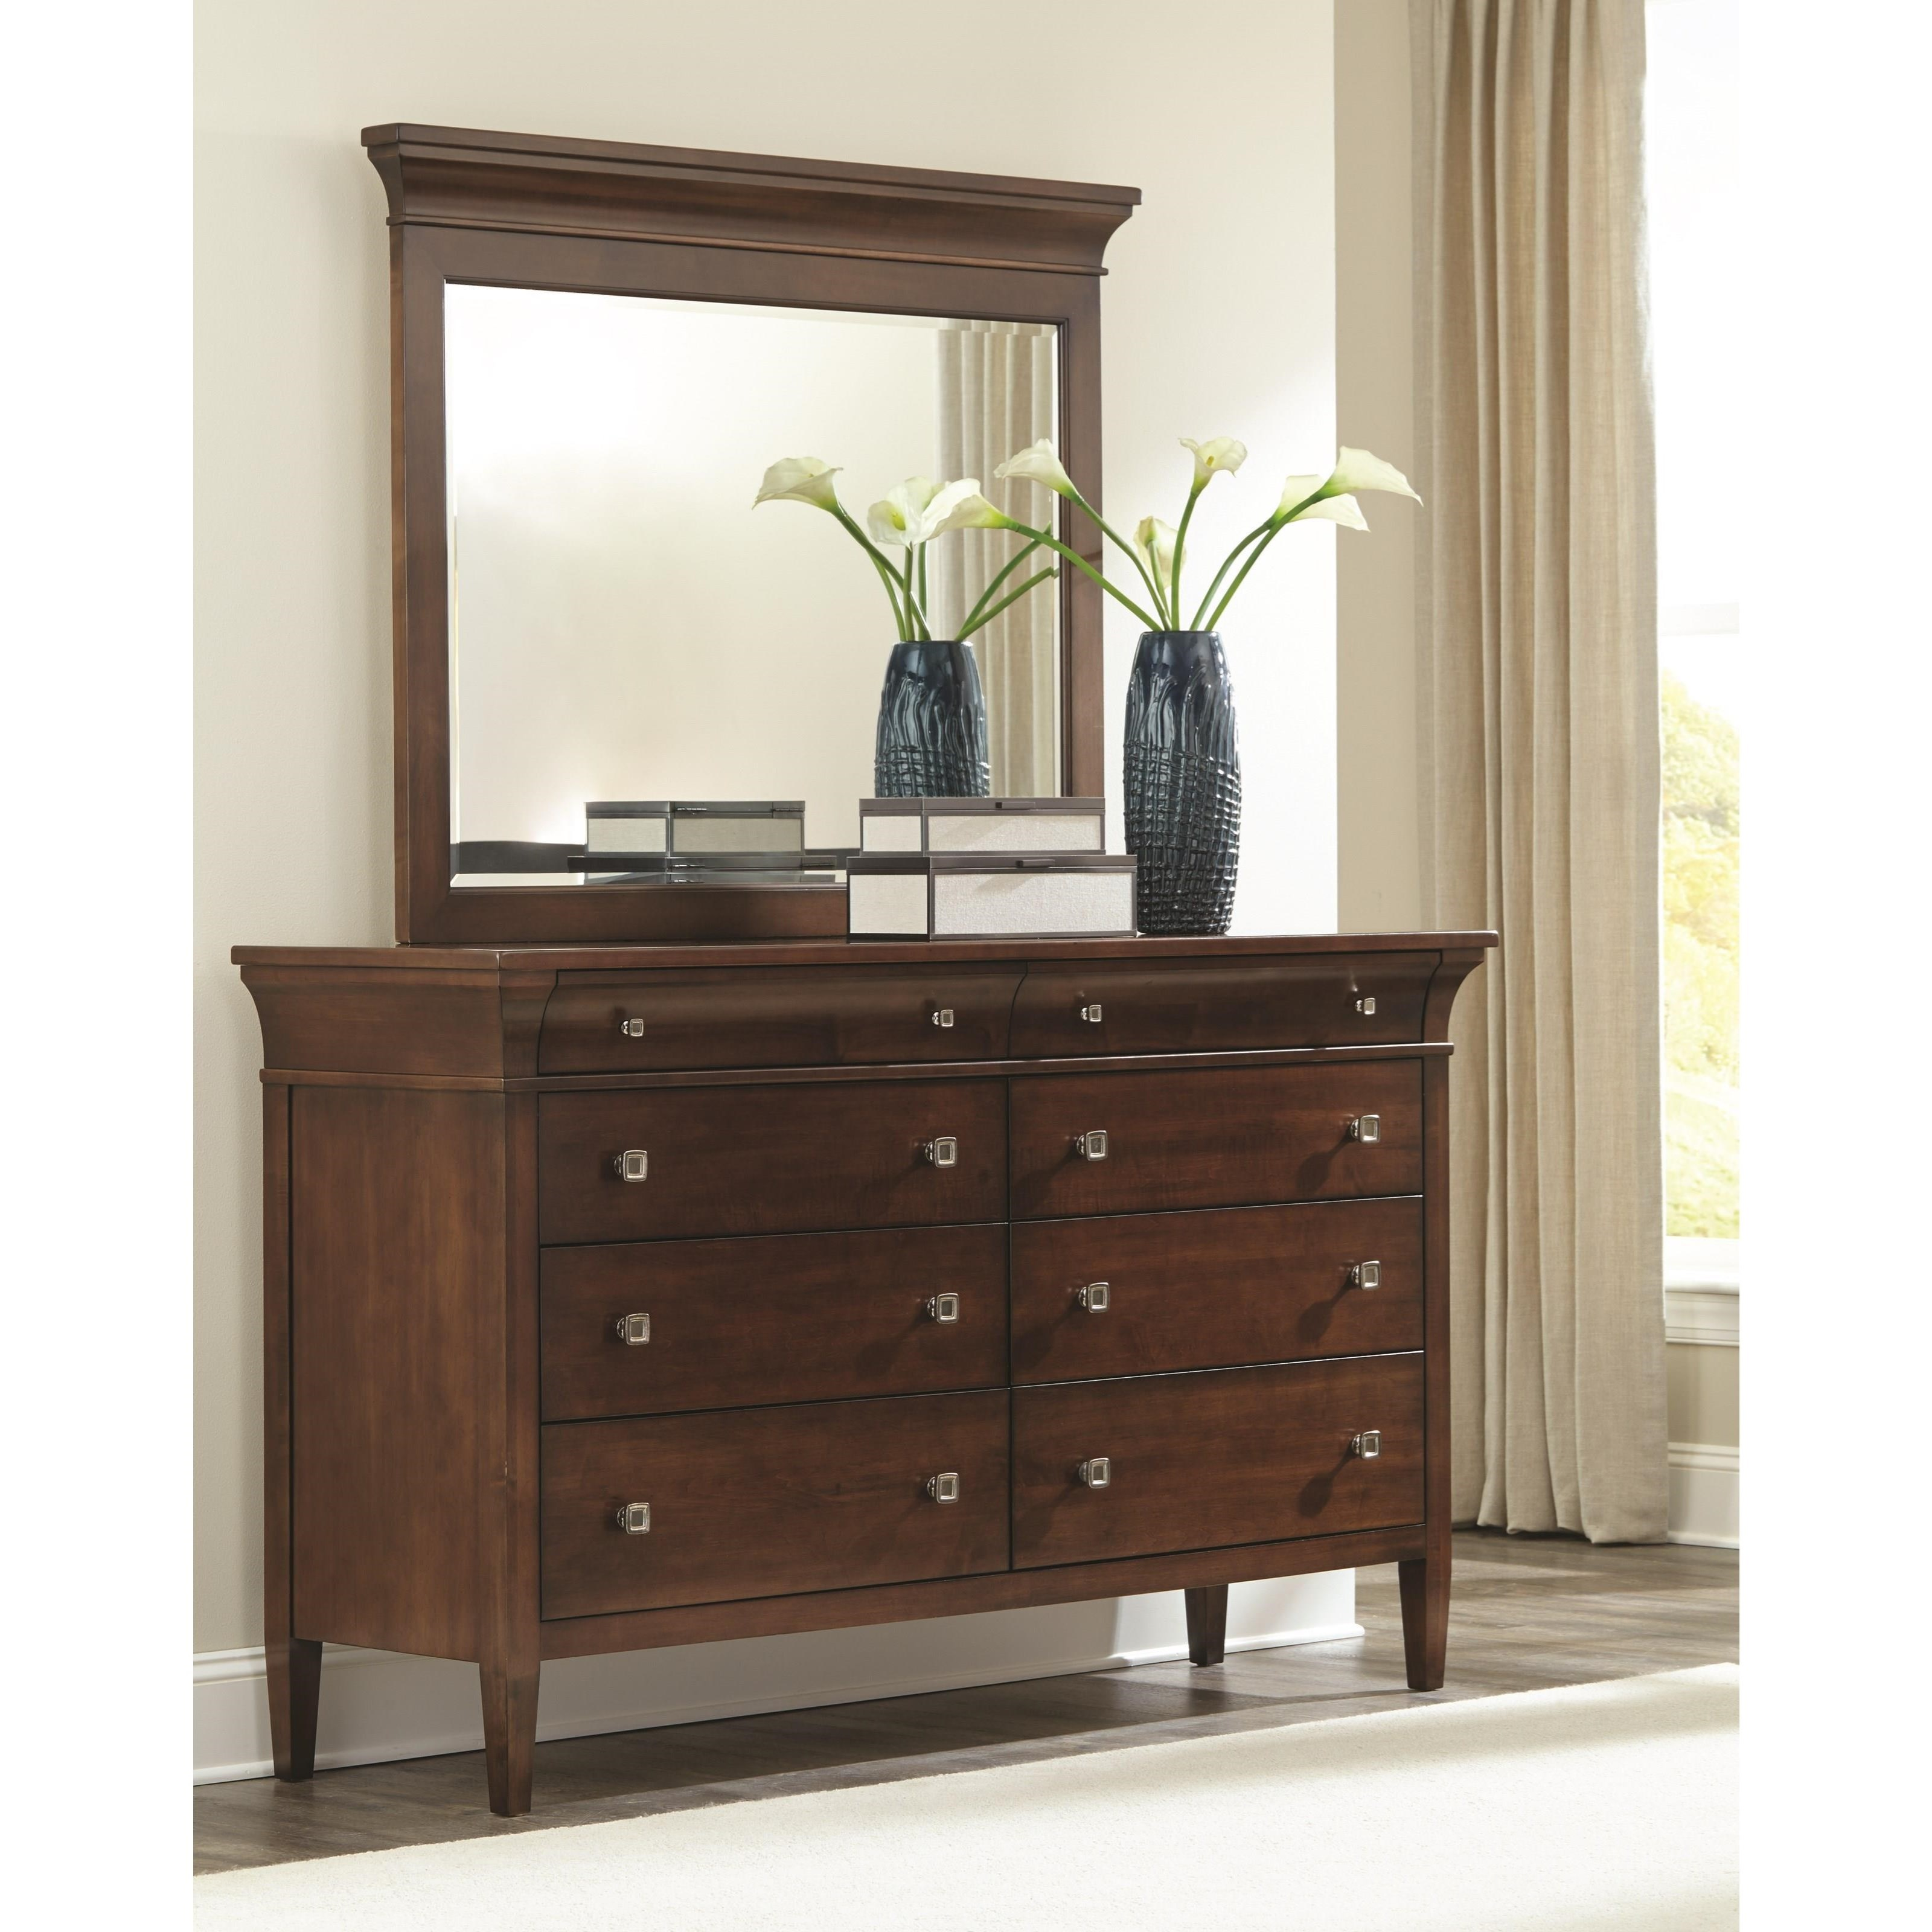 Durham prominence dresser with soft close drawers stoney creek furniture dressers for Bedroom furniture soft close drawers